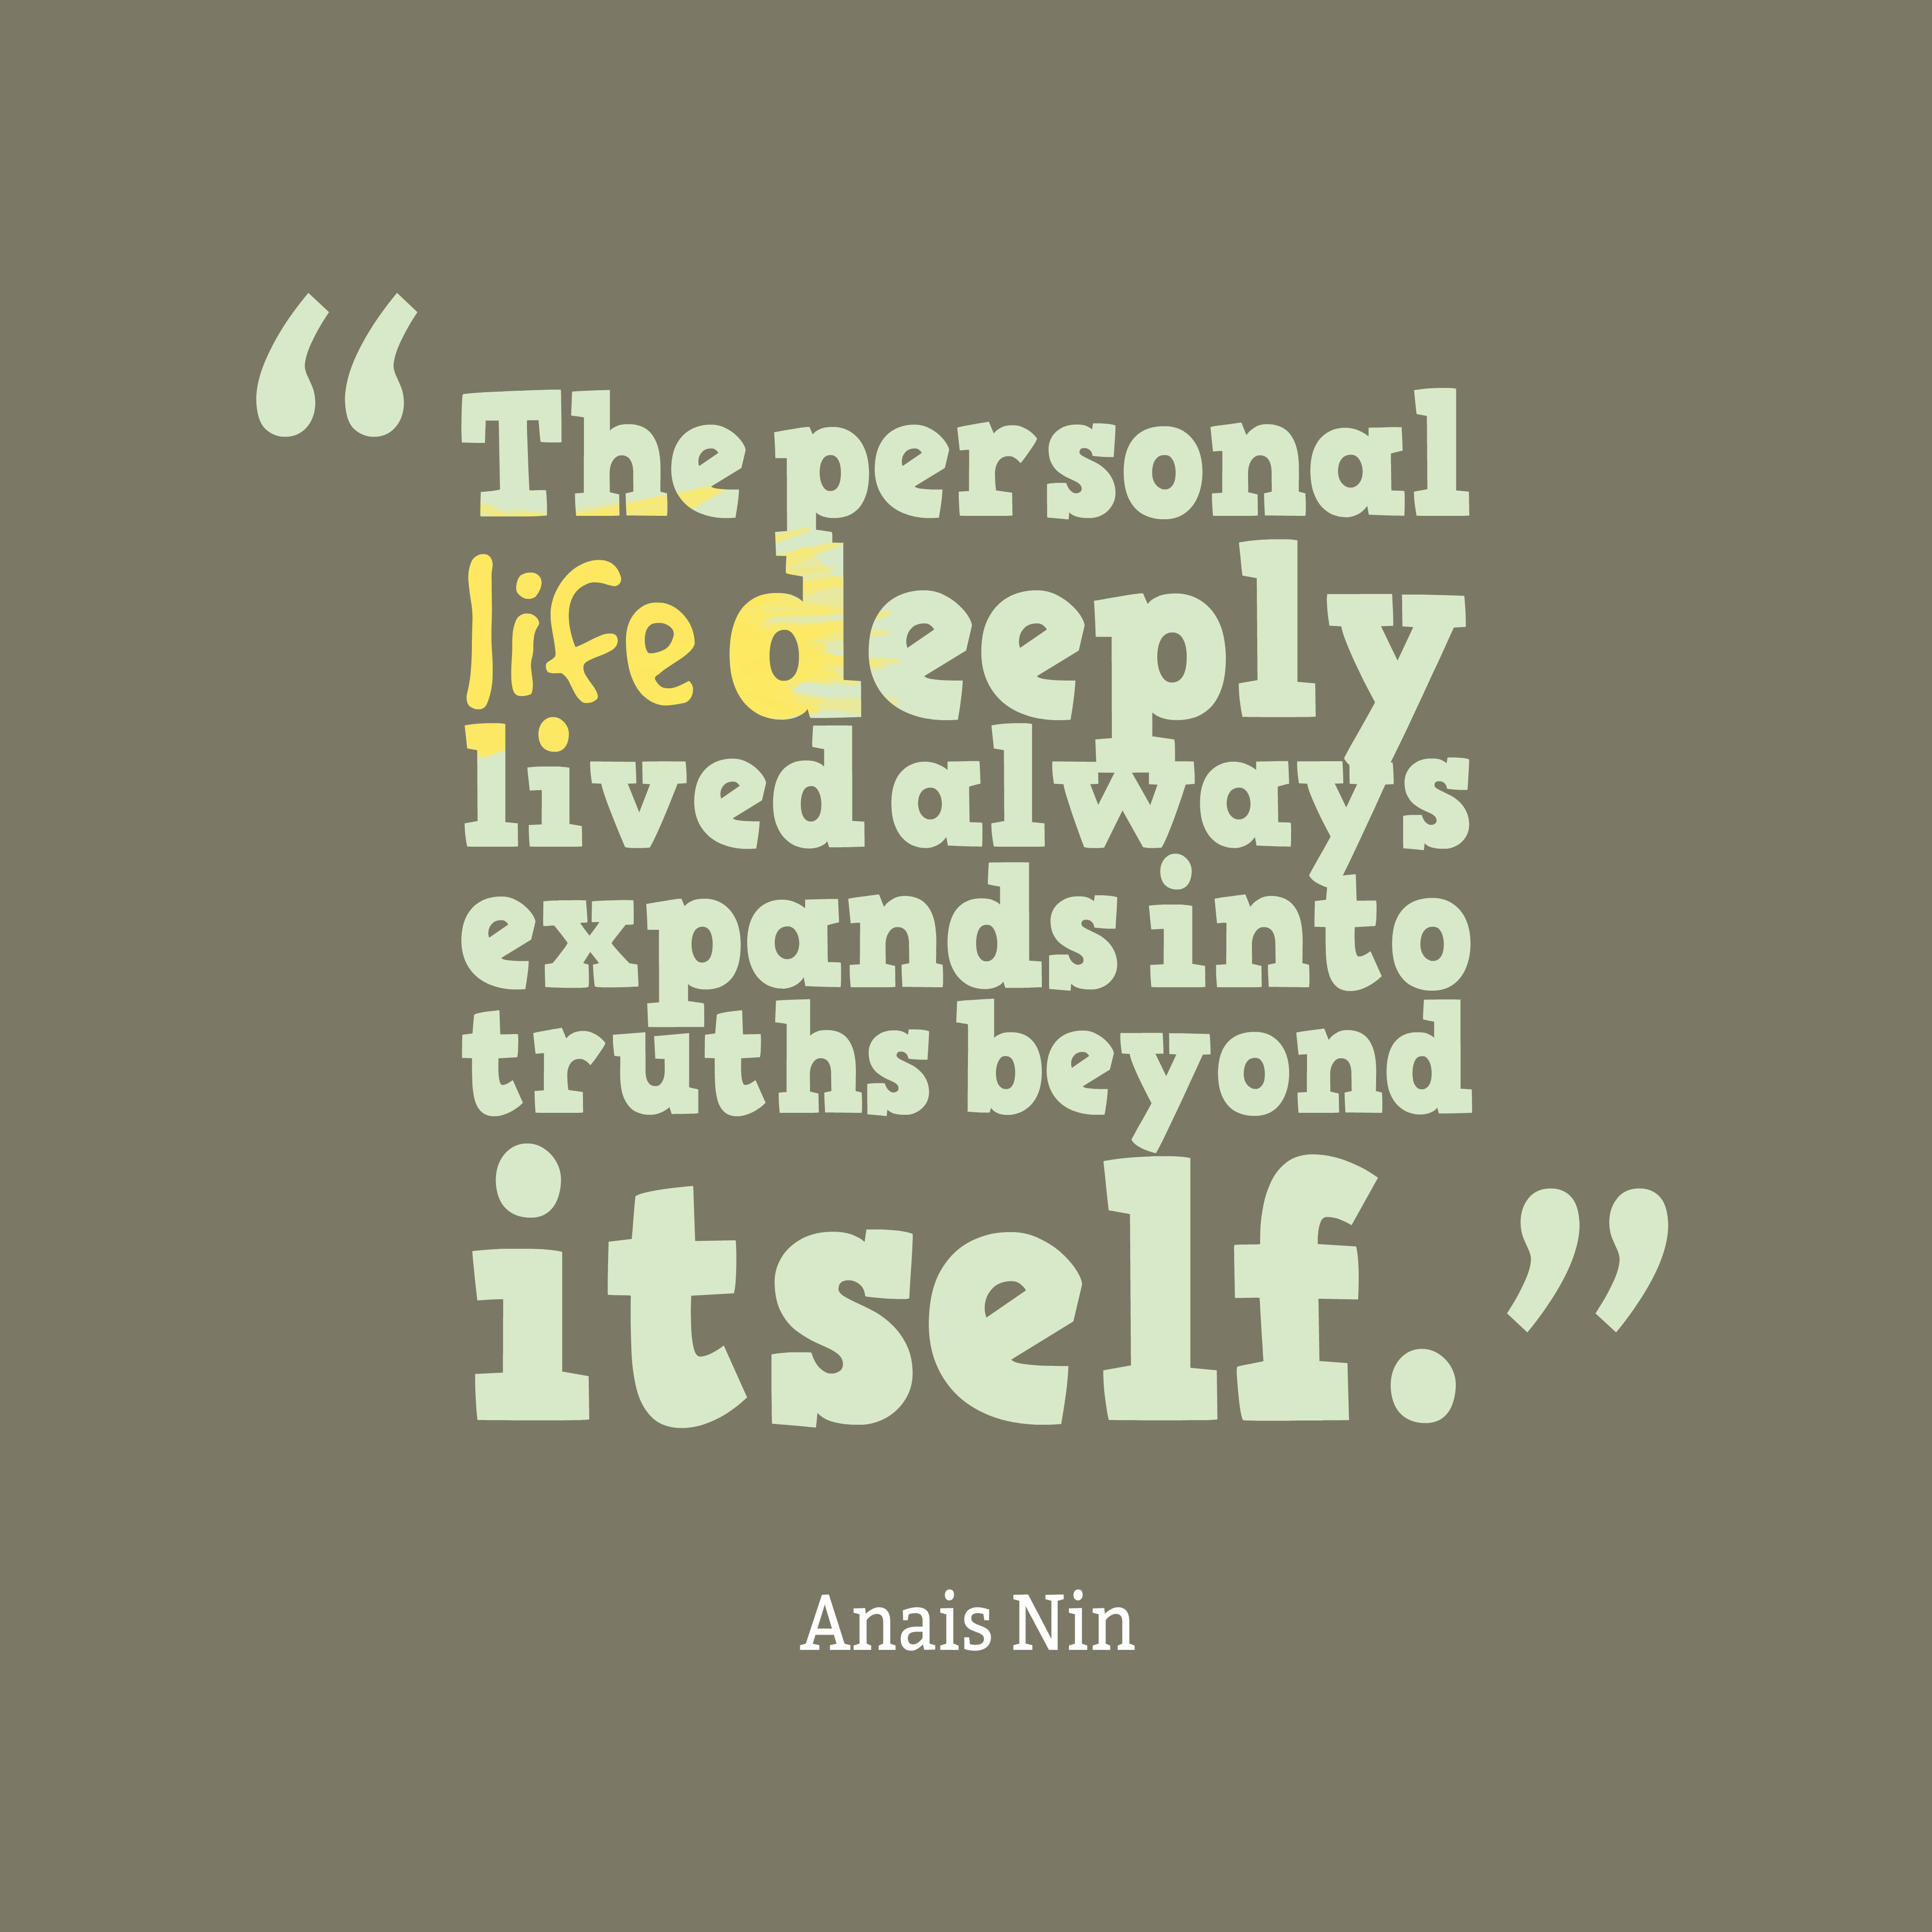 Quotes image of The personal life deeply lived always expands into truths beyond itself.